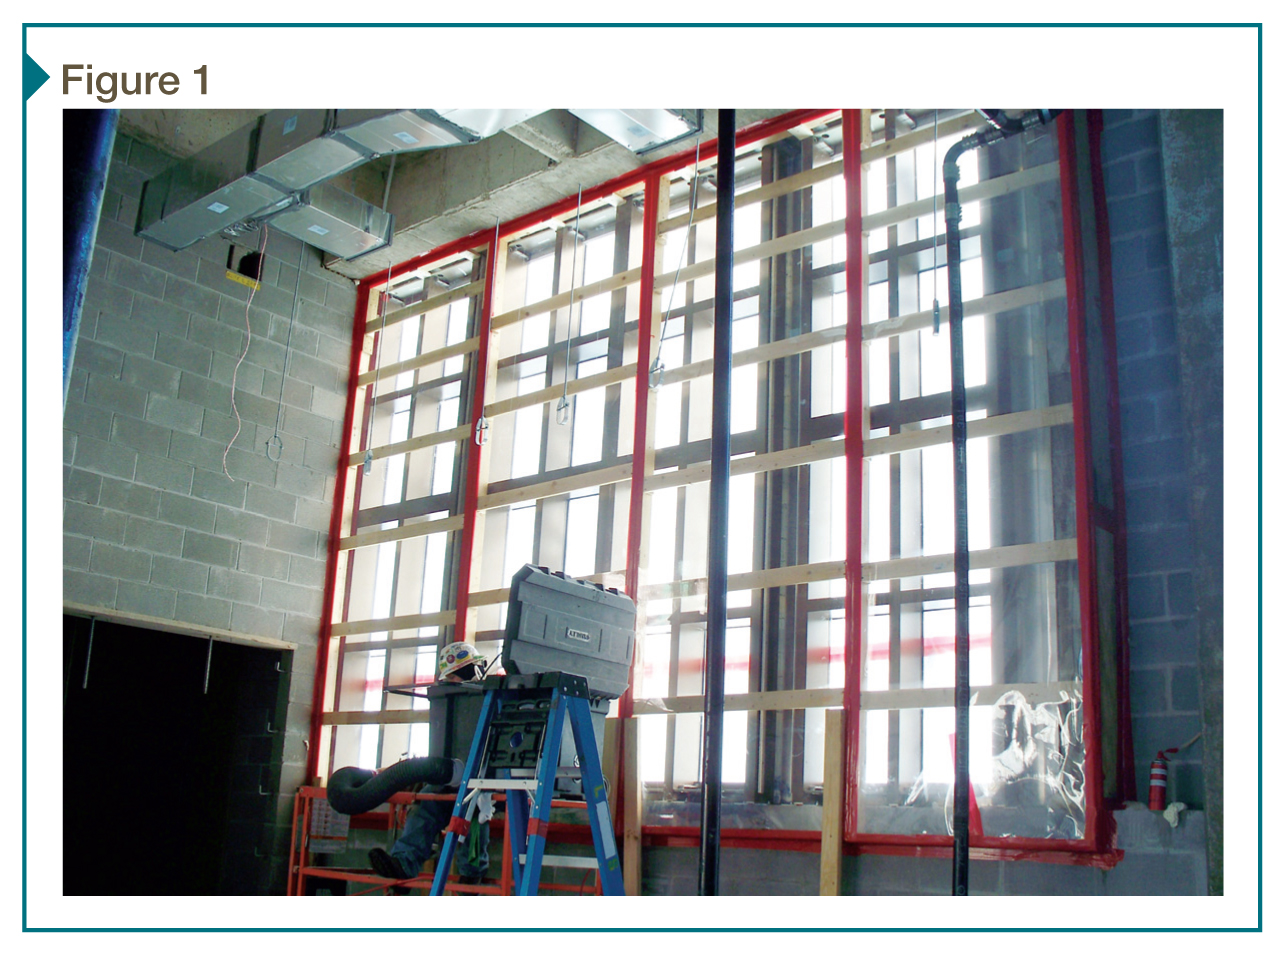 Glass Curtain Wall Manufacturer To Test Or Not To Test A Guide To Field Quality Control